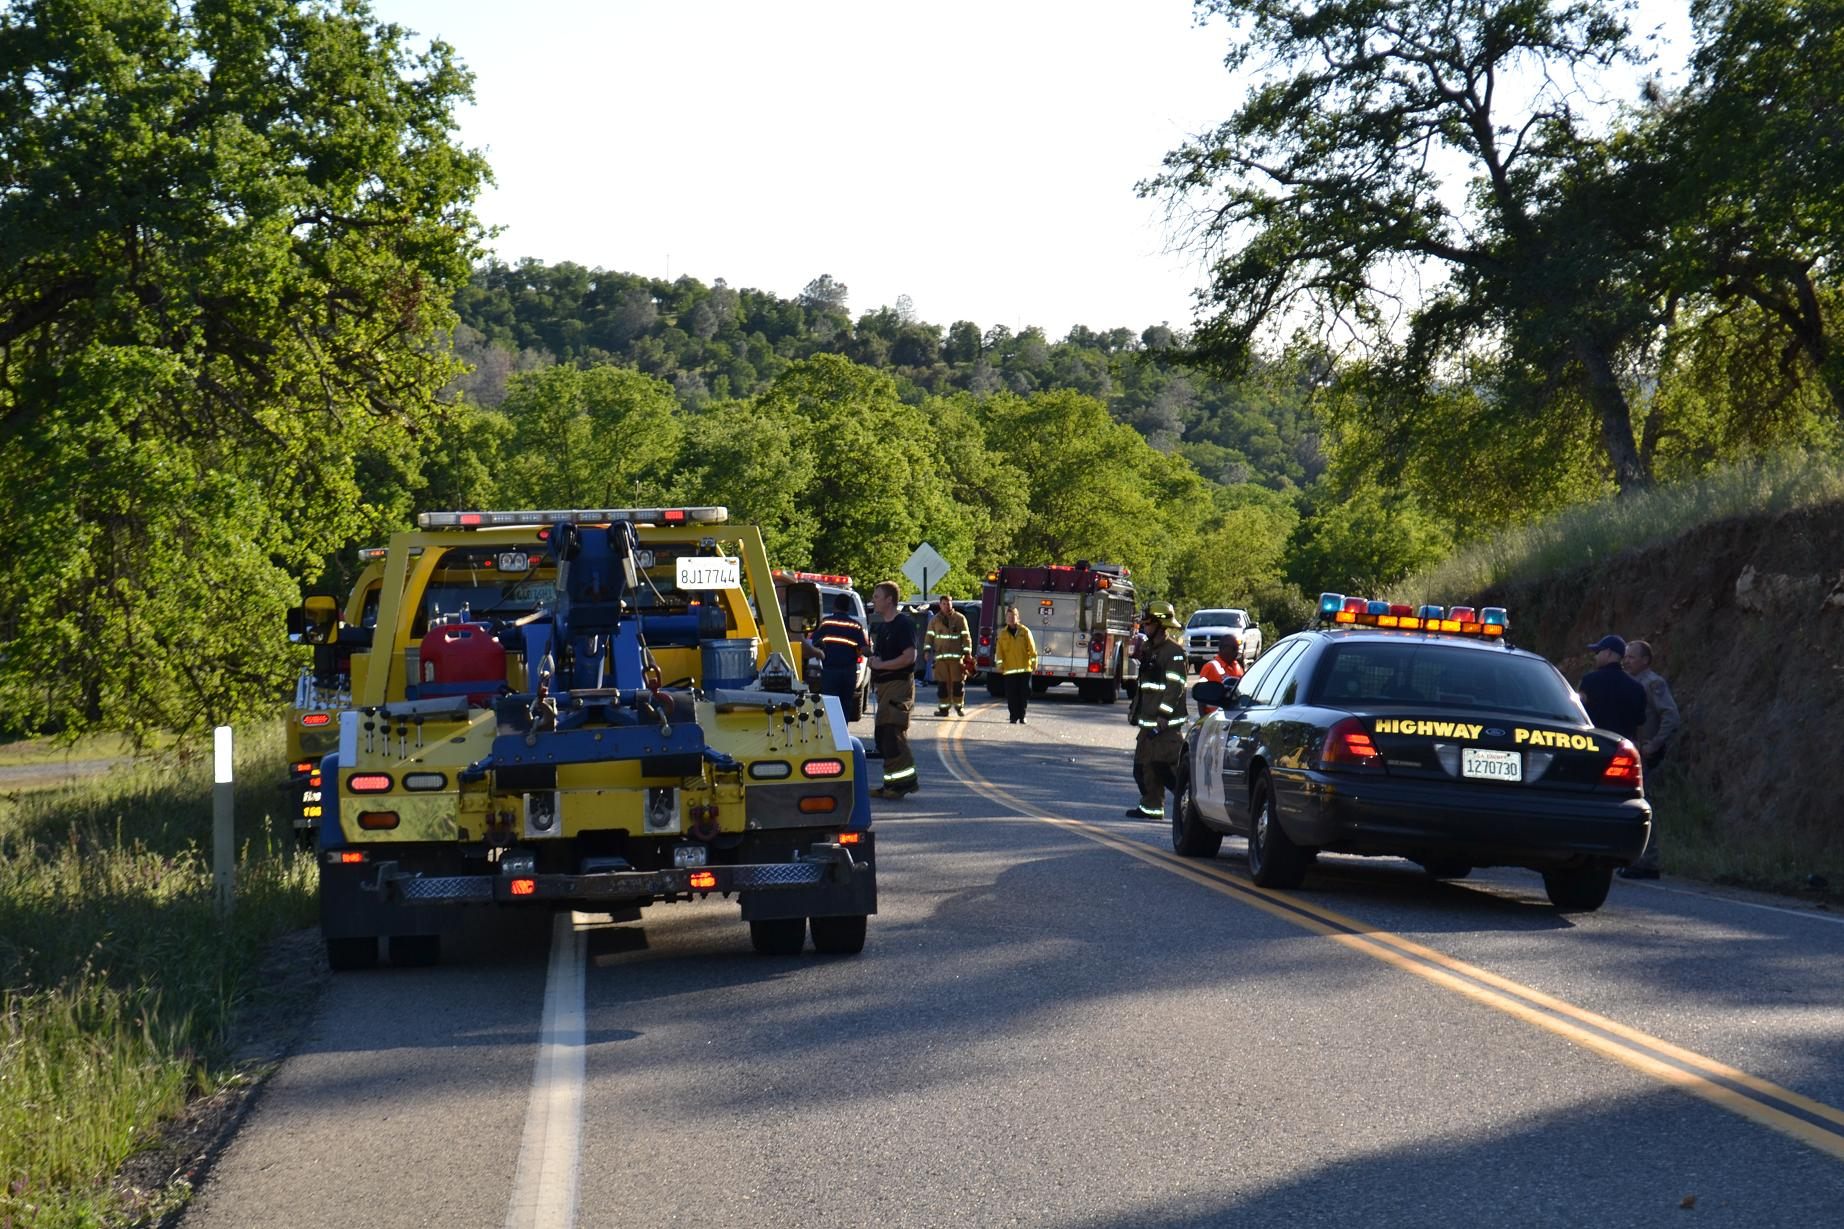 First Responders At Road 415 Accident